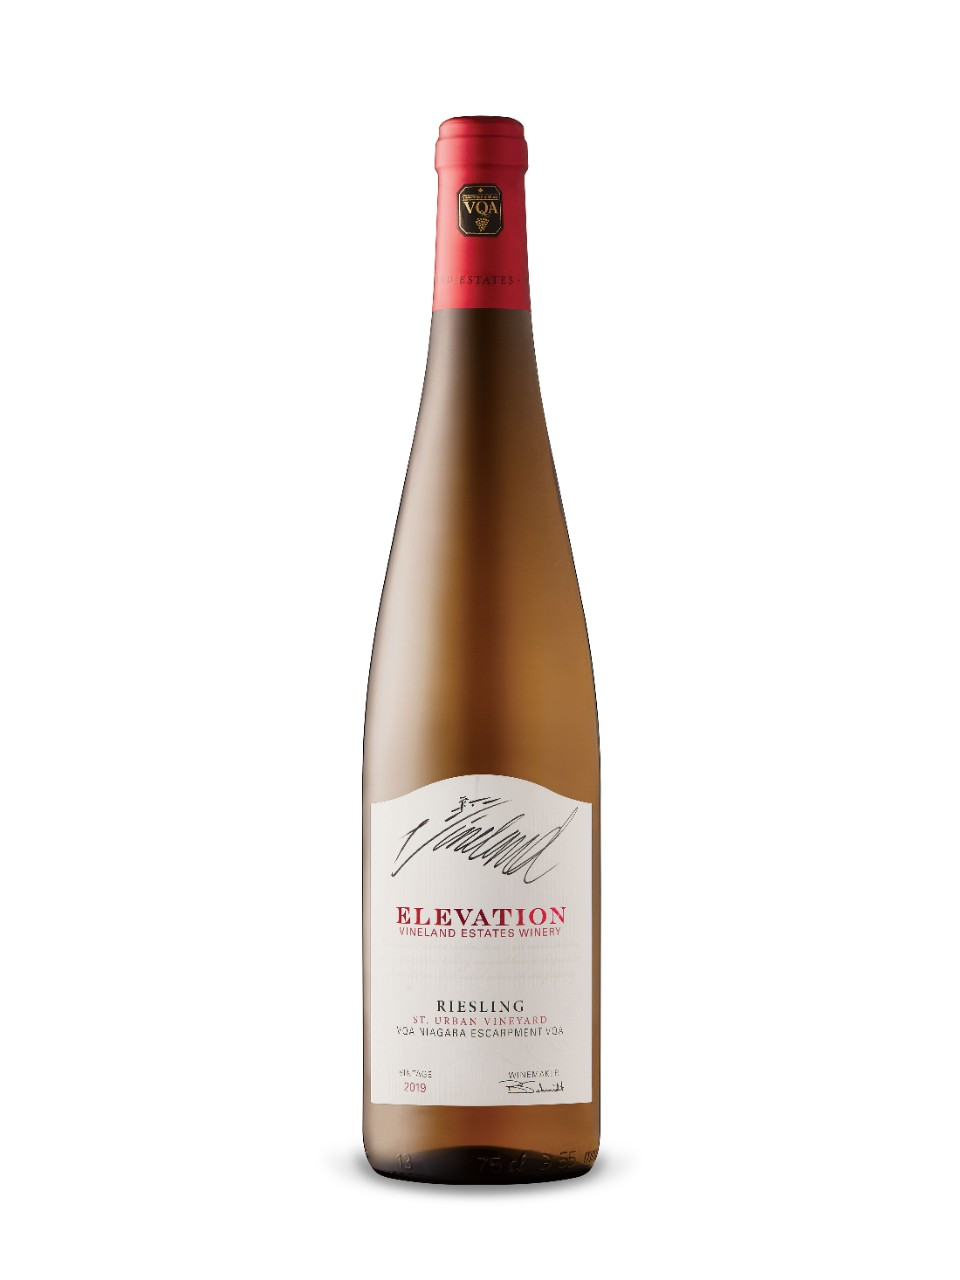 Image for Vineland Estates Elevation St. Urban Vineyard Riesling from LCBO